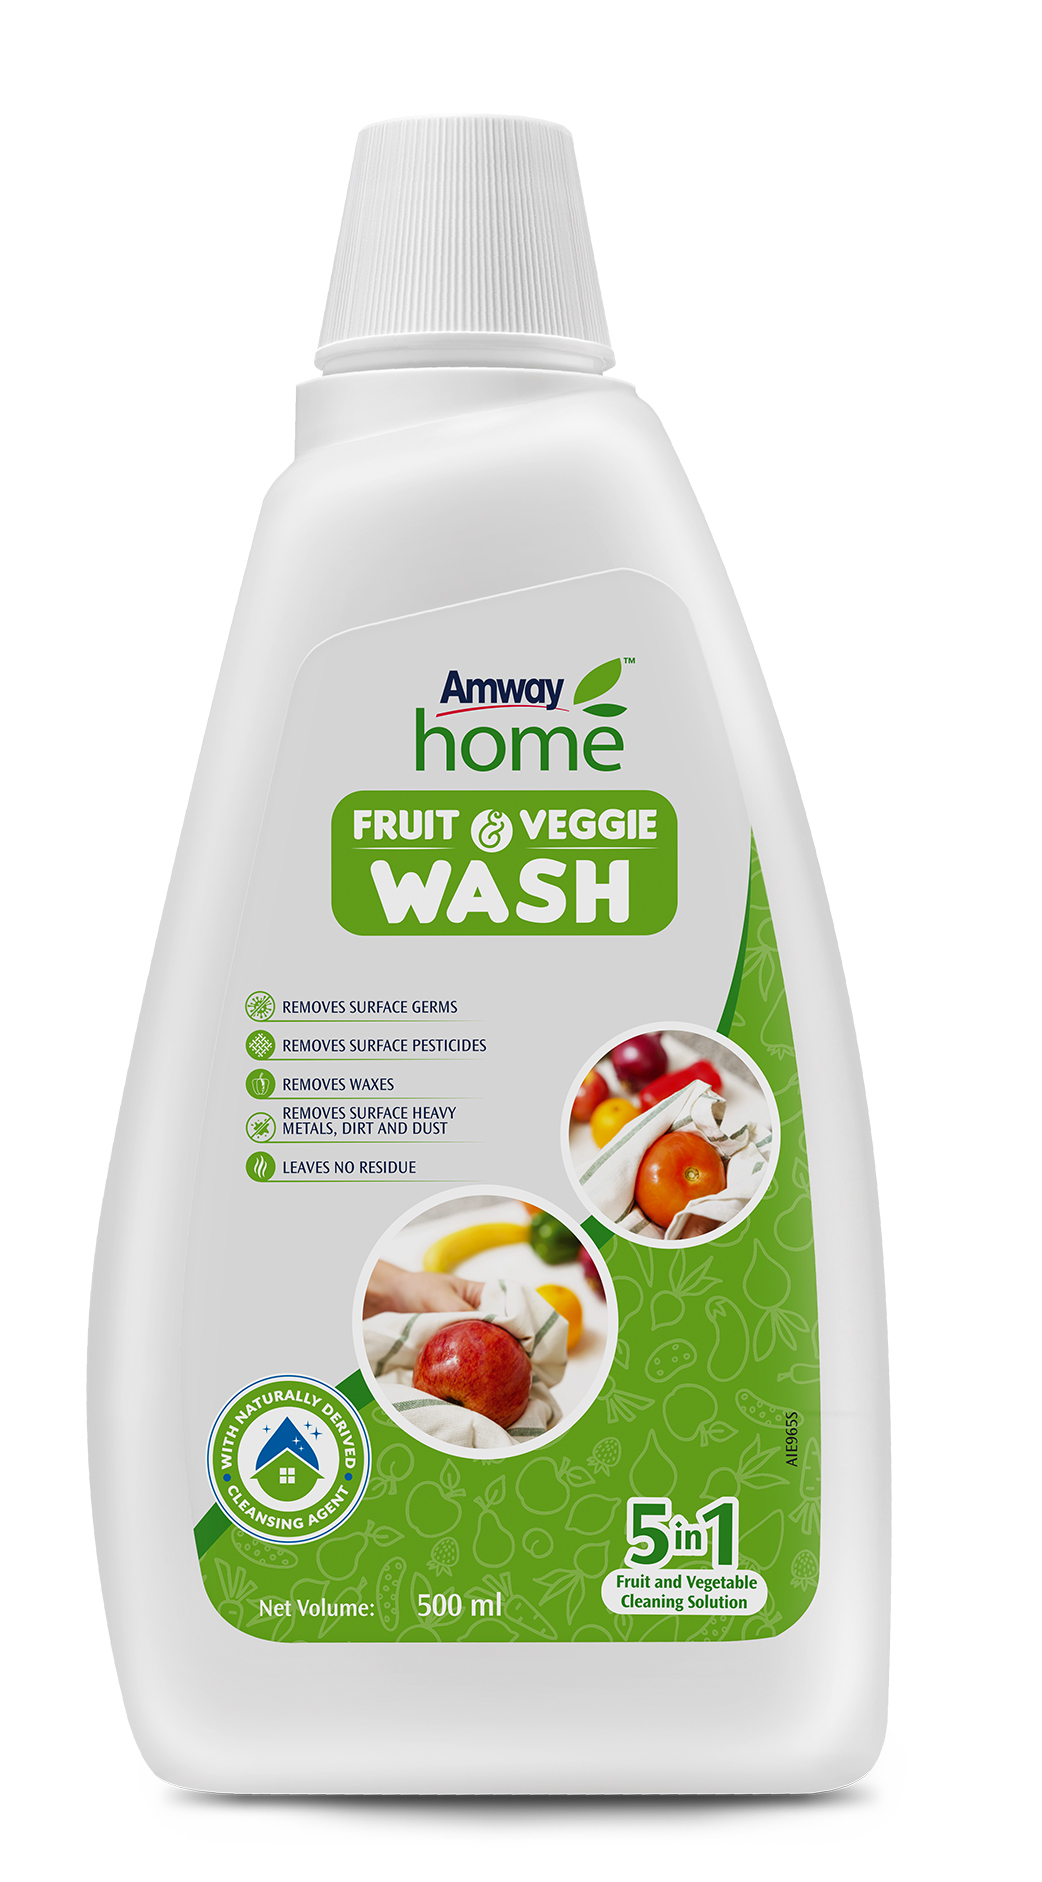 Amway Forays into Vegetable and Fruit Hygiene